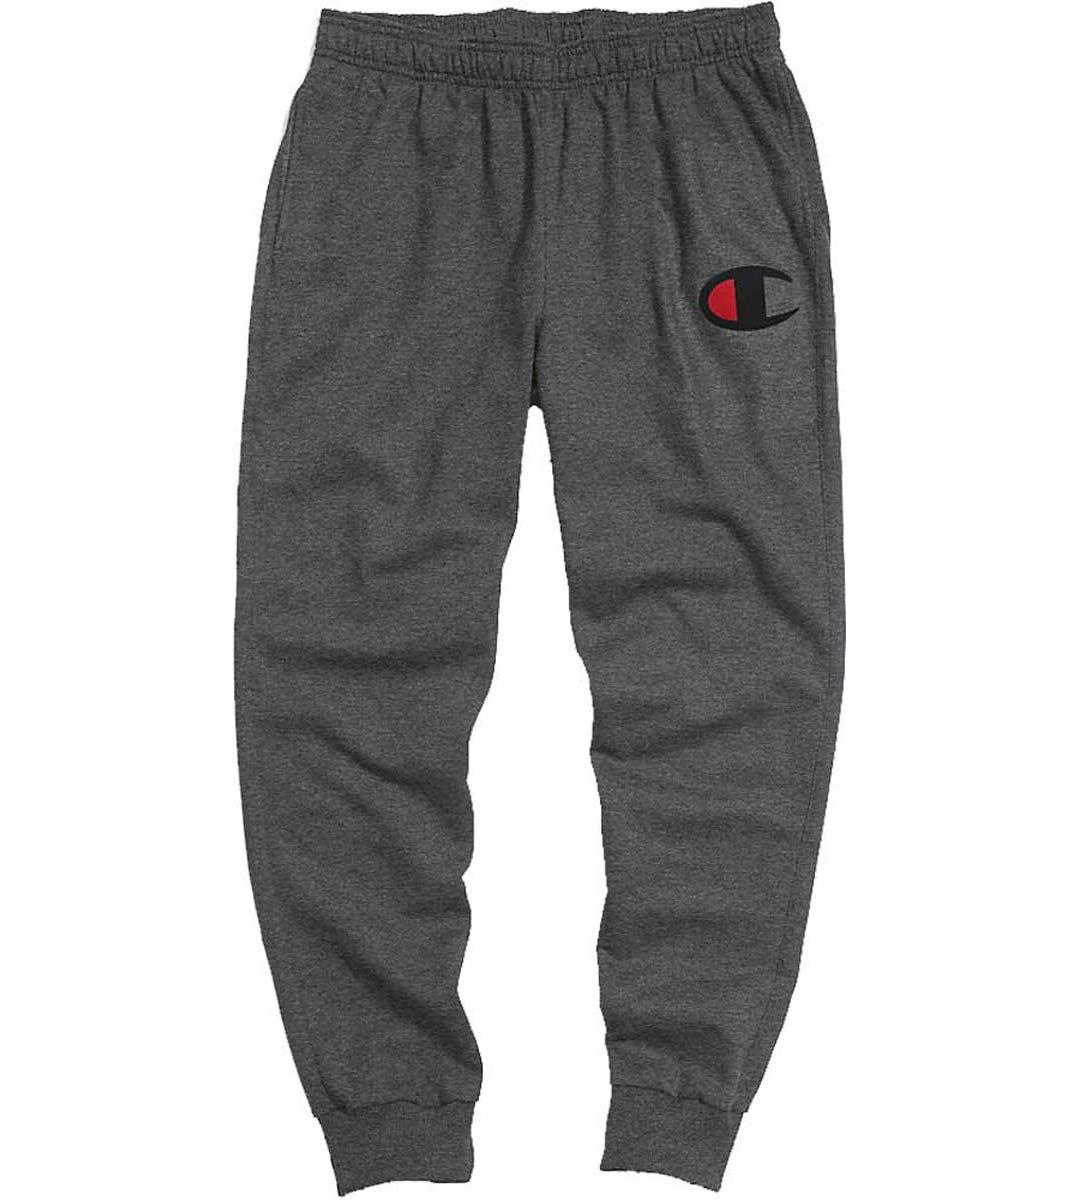 8b0d47620422 Champion Men's Powerblend C Graphic Joggers | DICK'S Sporting Goods